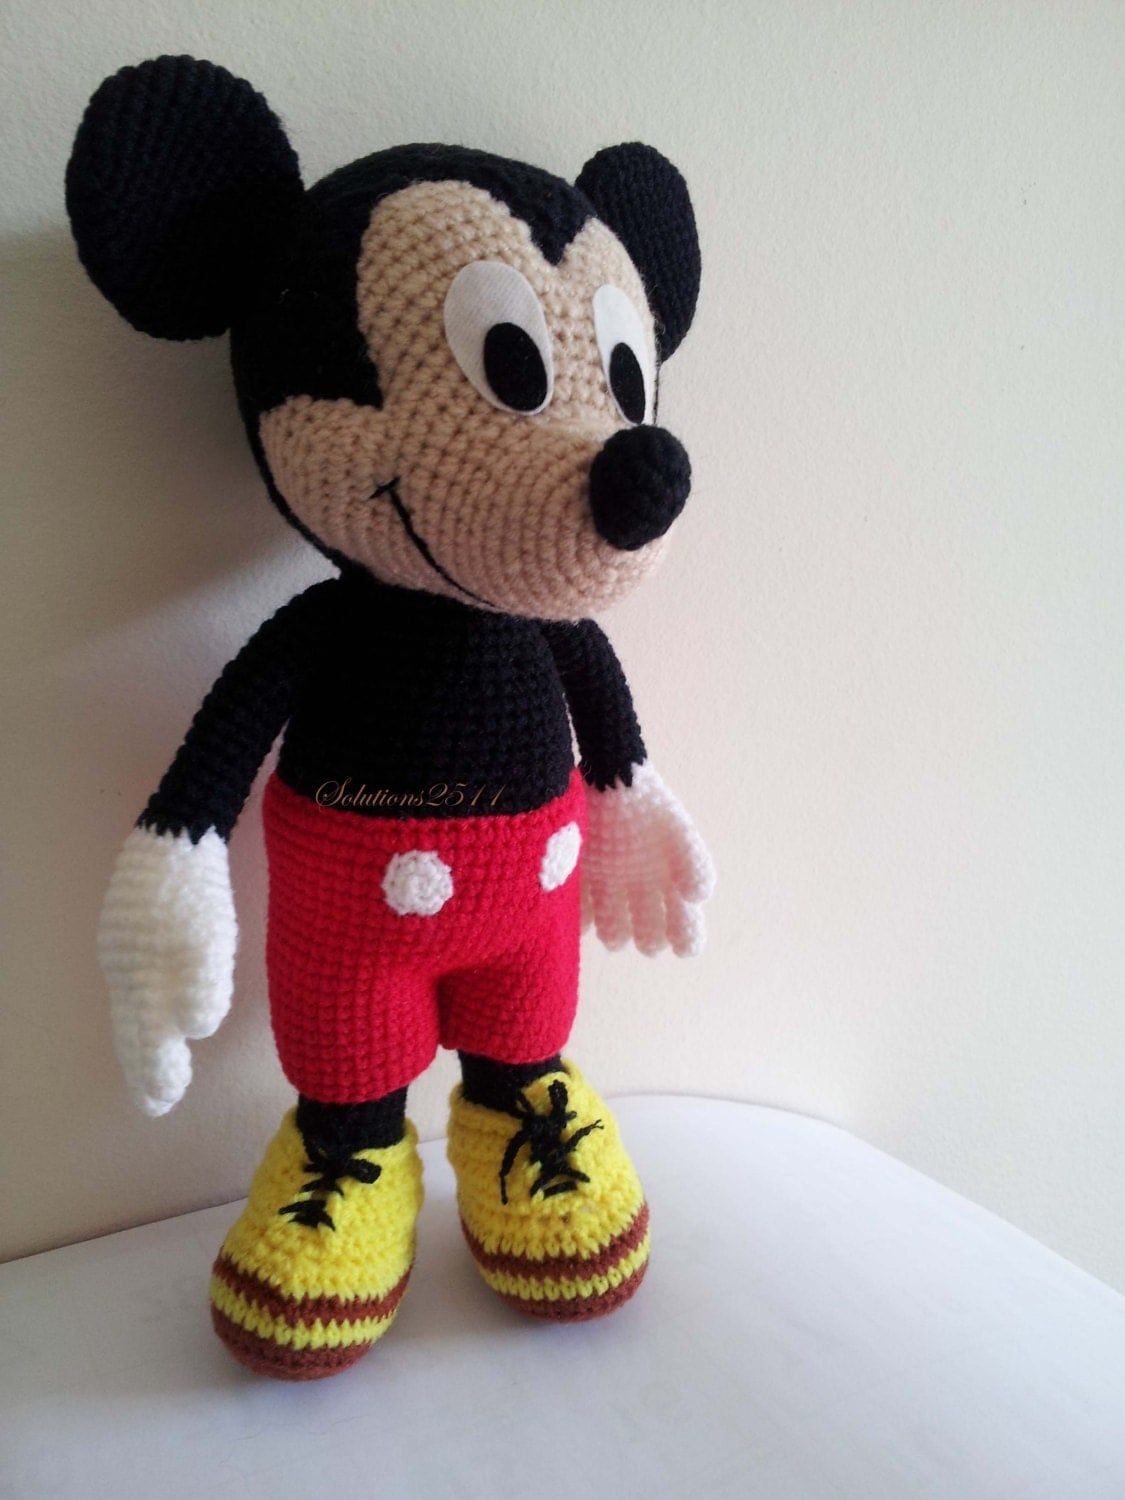 Magnificent Mickey Mouse Crochet Pattern Ornament - Easy Scarf ...